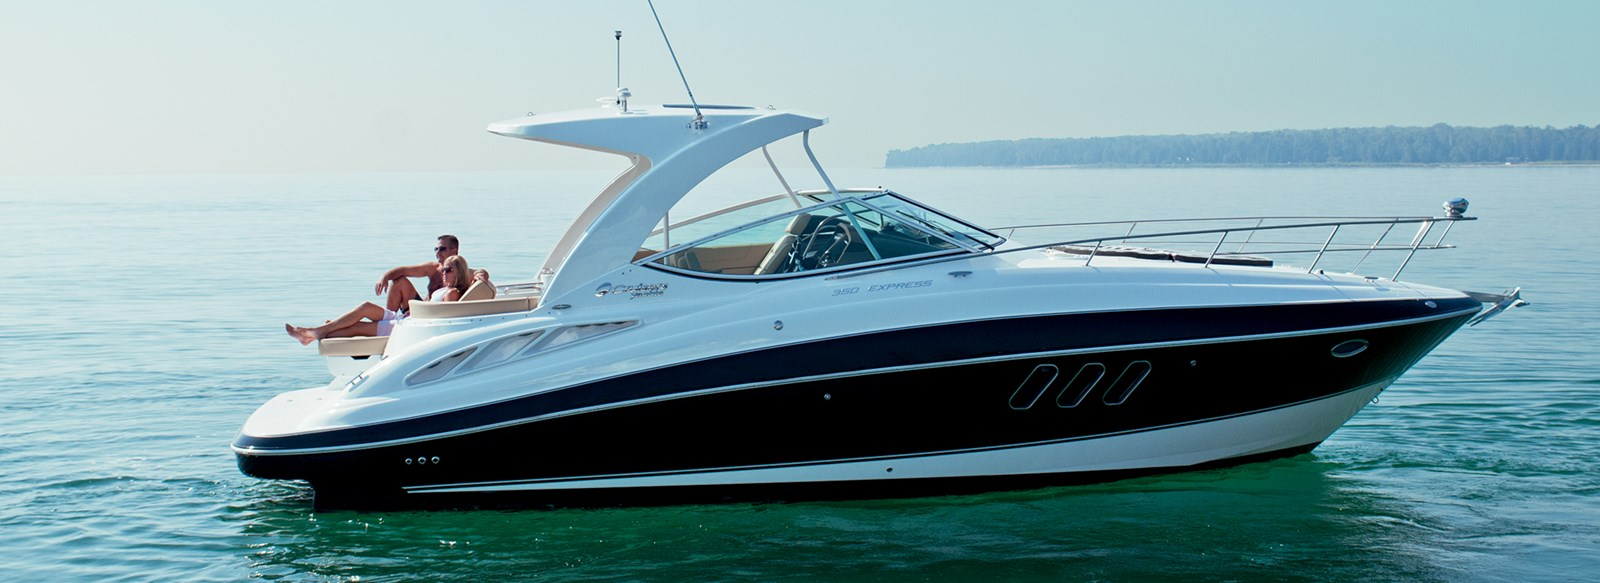 New Cruisers 350 Express Yachts For Sale